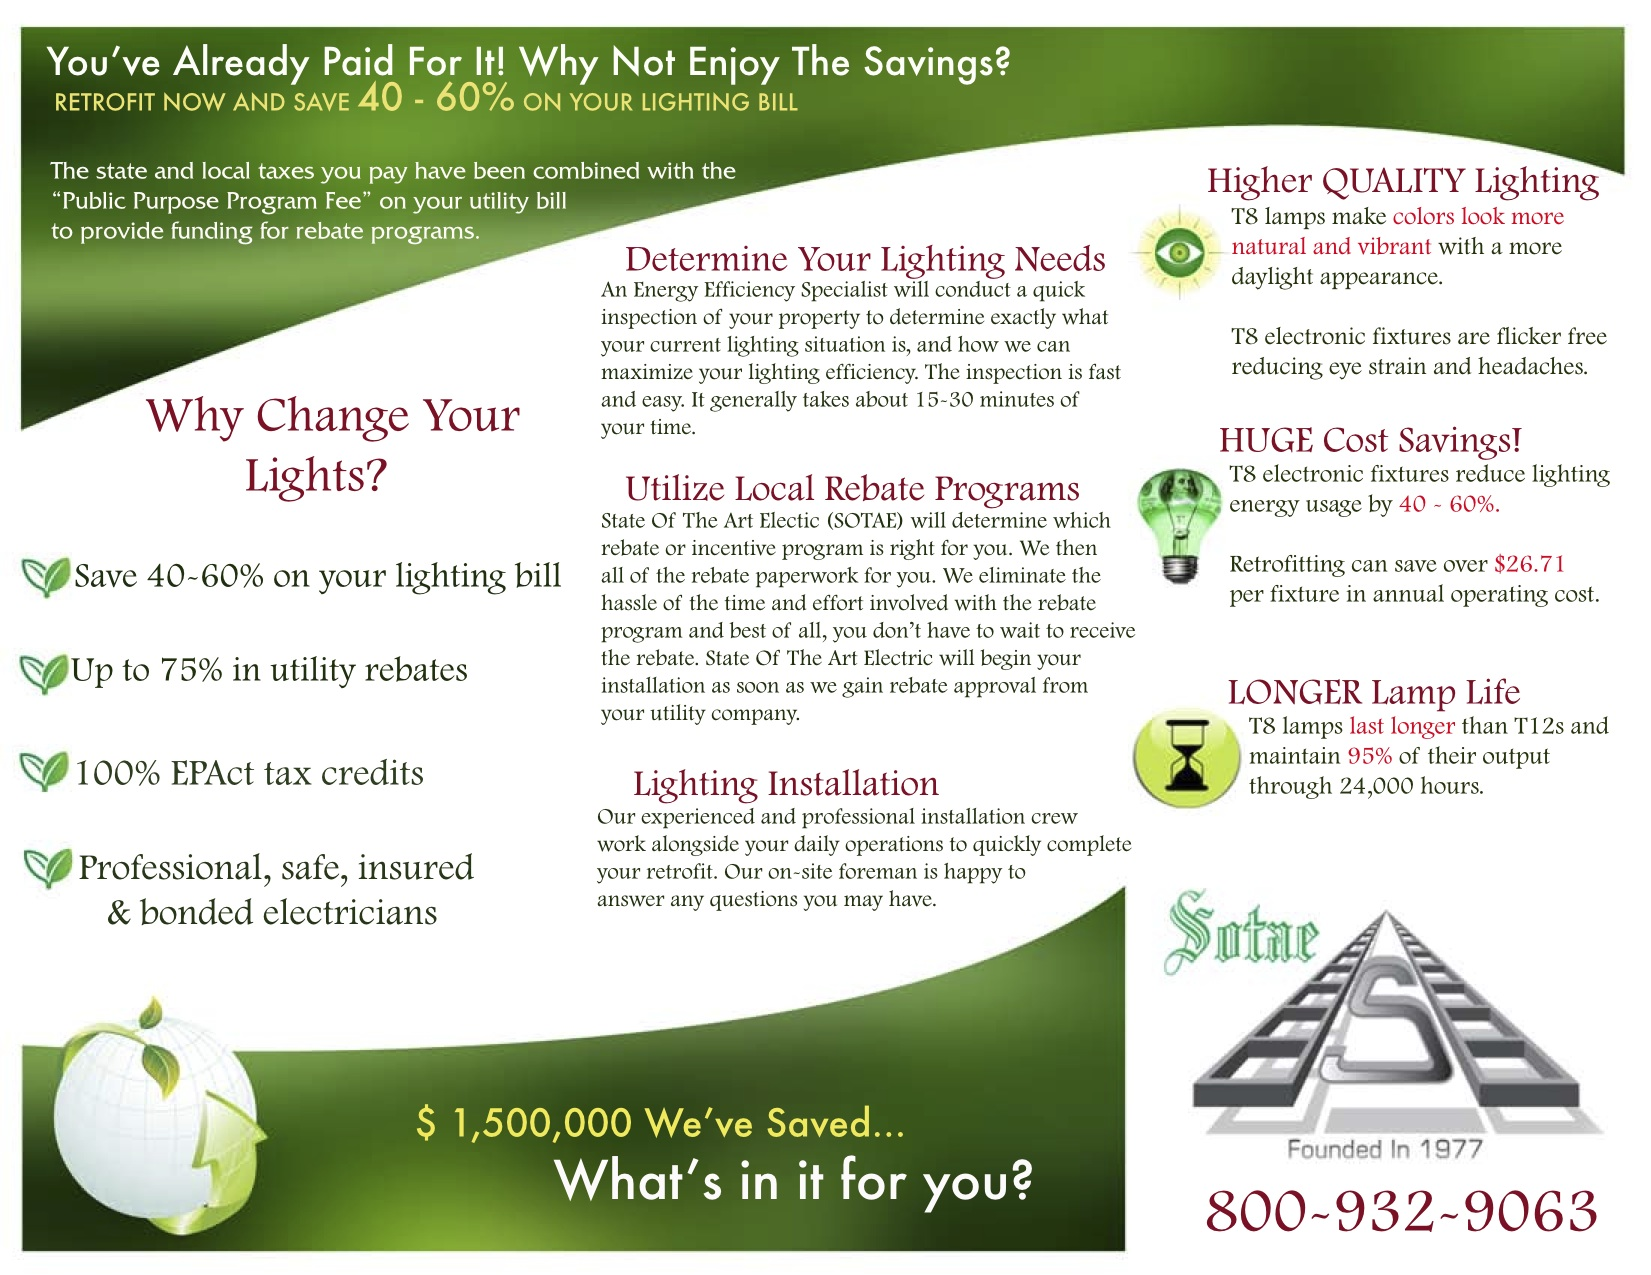 SRS Realty Saved $51,327.86 Per Year Through Lighting Retrofit